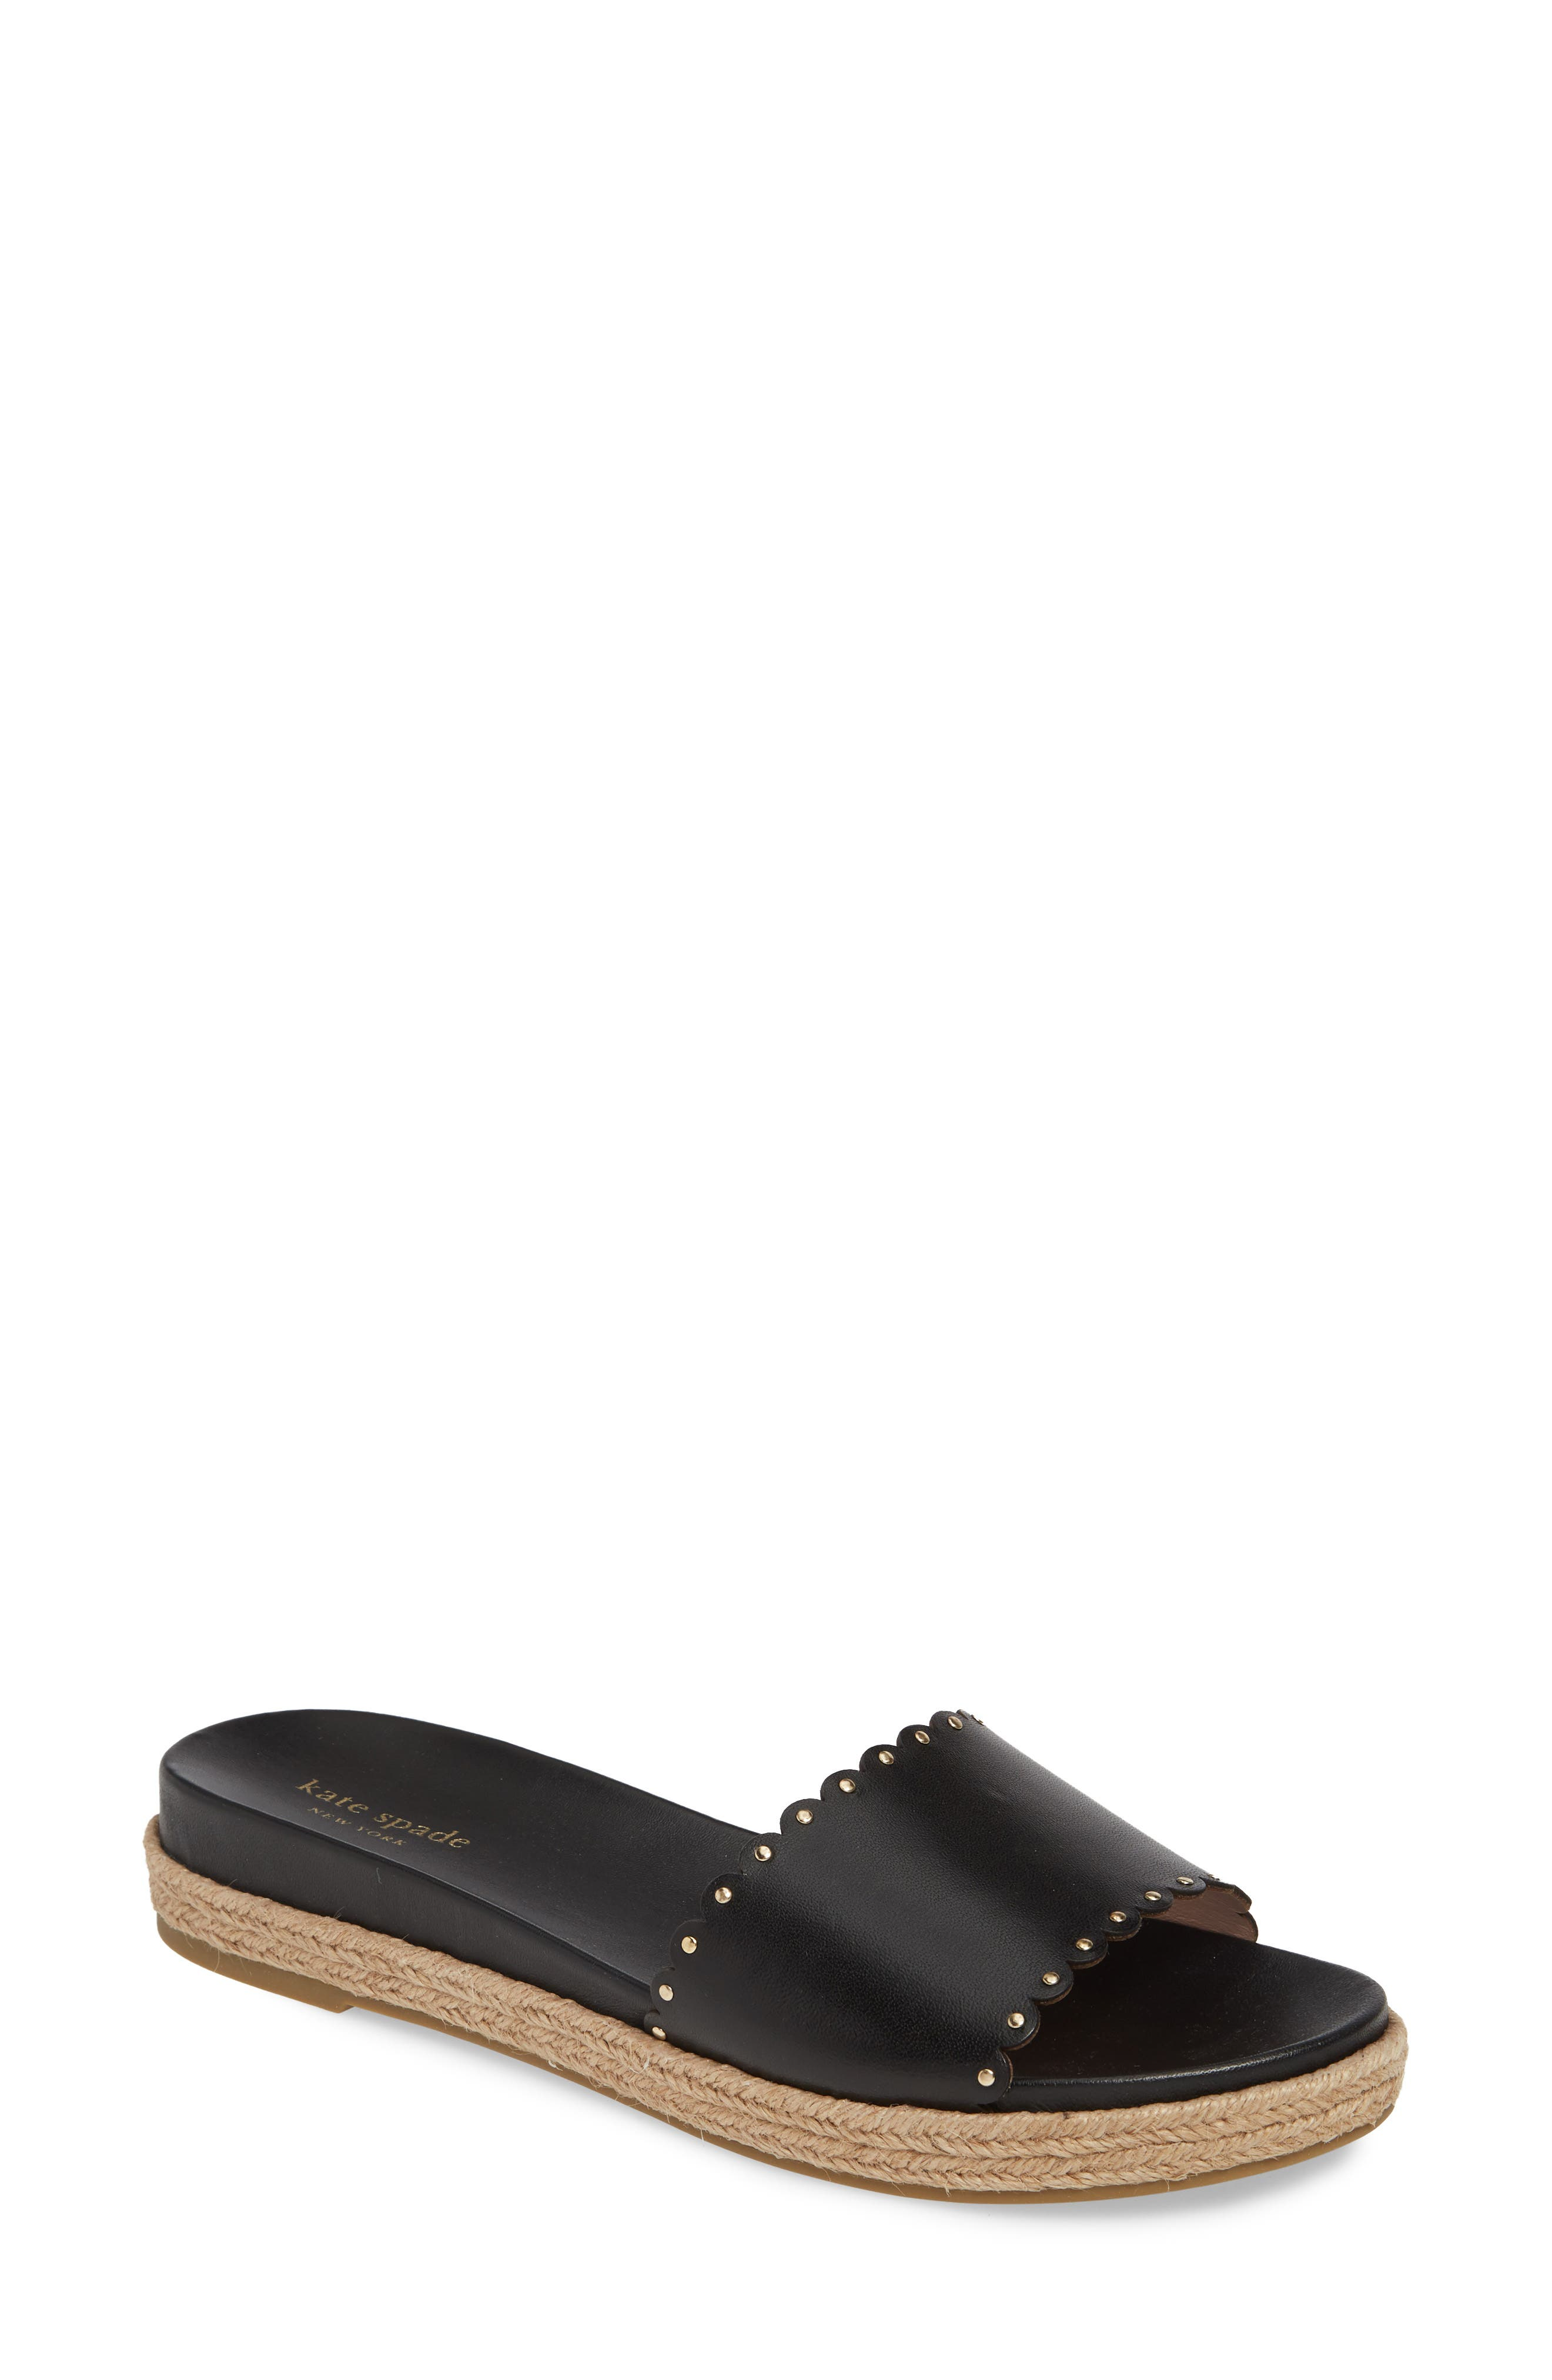 91791f64570b Women s Kate Spade New York Mules   Slides